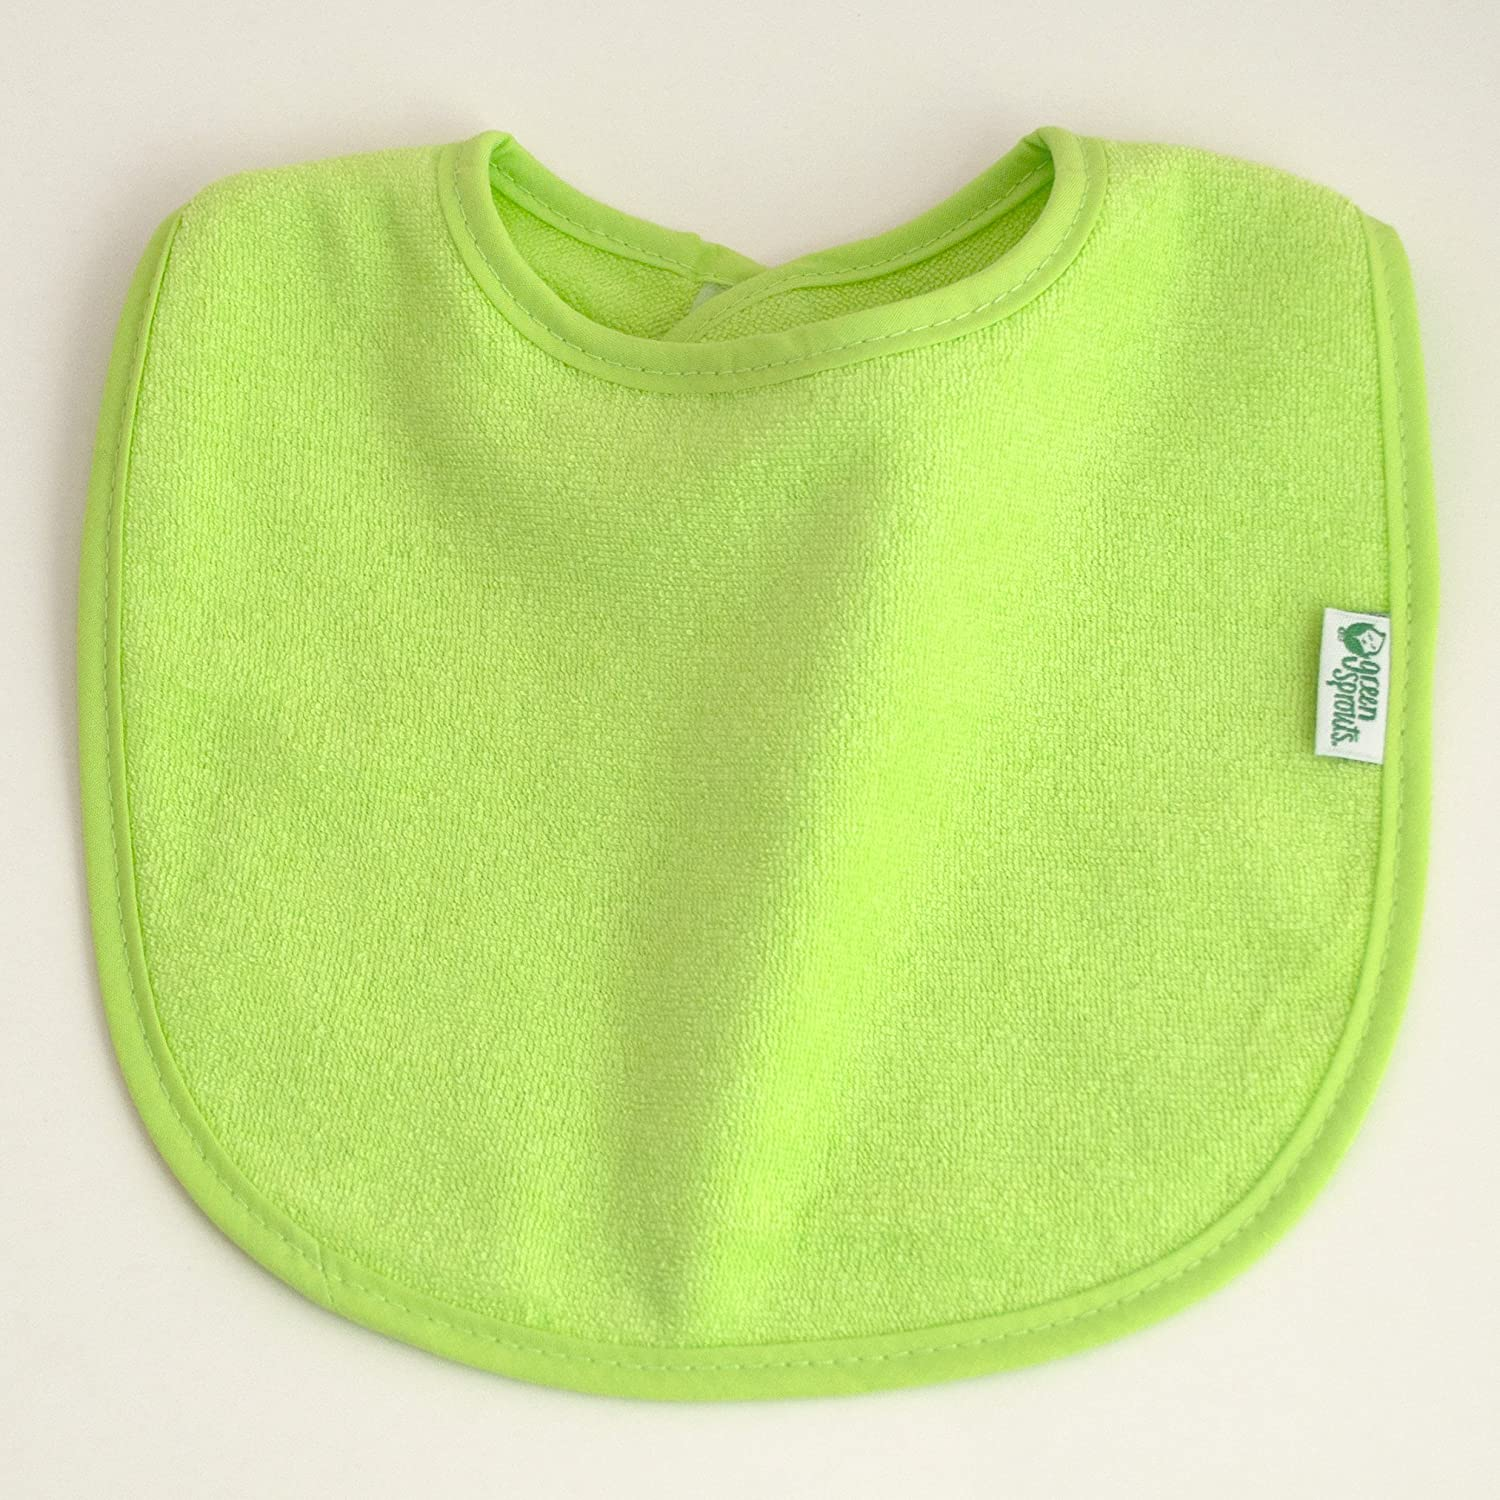 green sprouts Stay-dry Bibs Waterproof inner layer Machine washable 10 pack Knitted terry cotton and polyester   Ultimate protection from drools /& spit ups